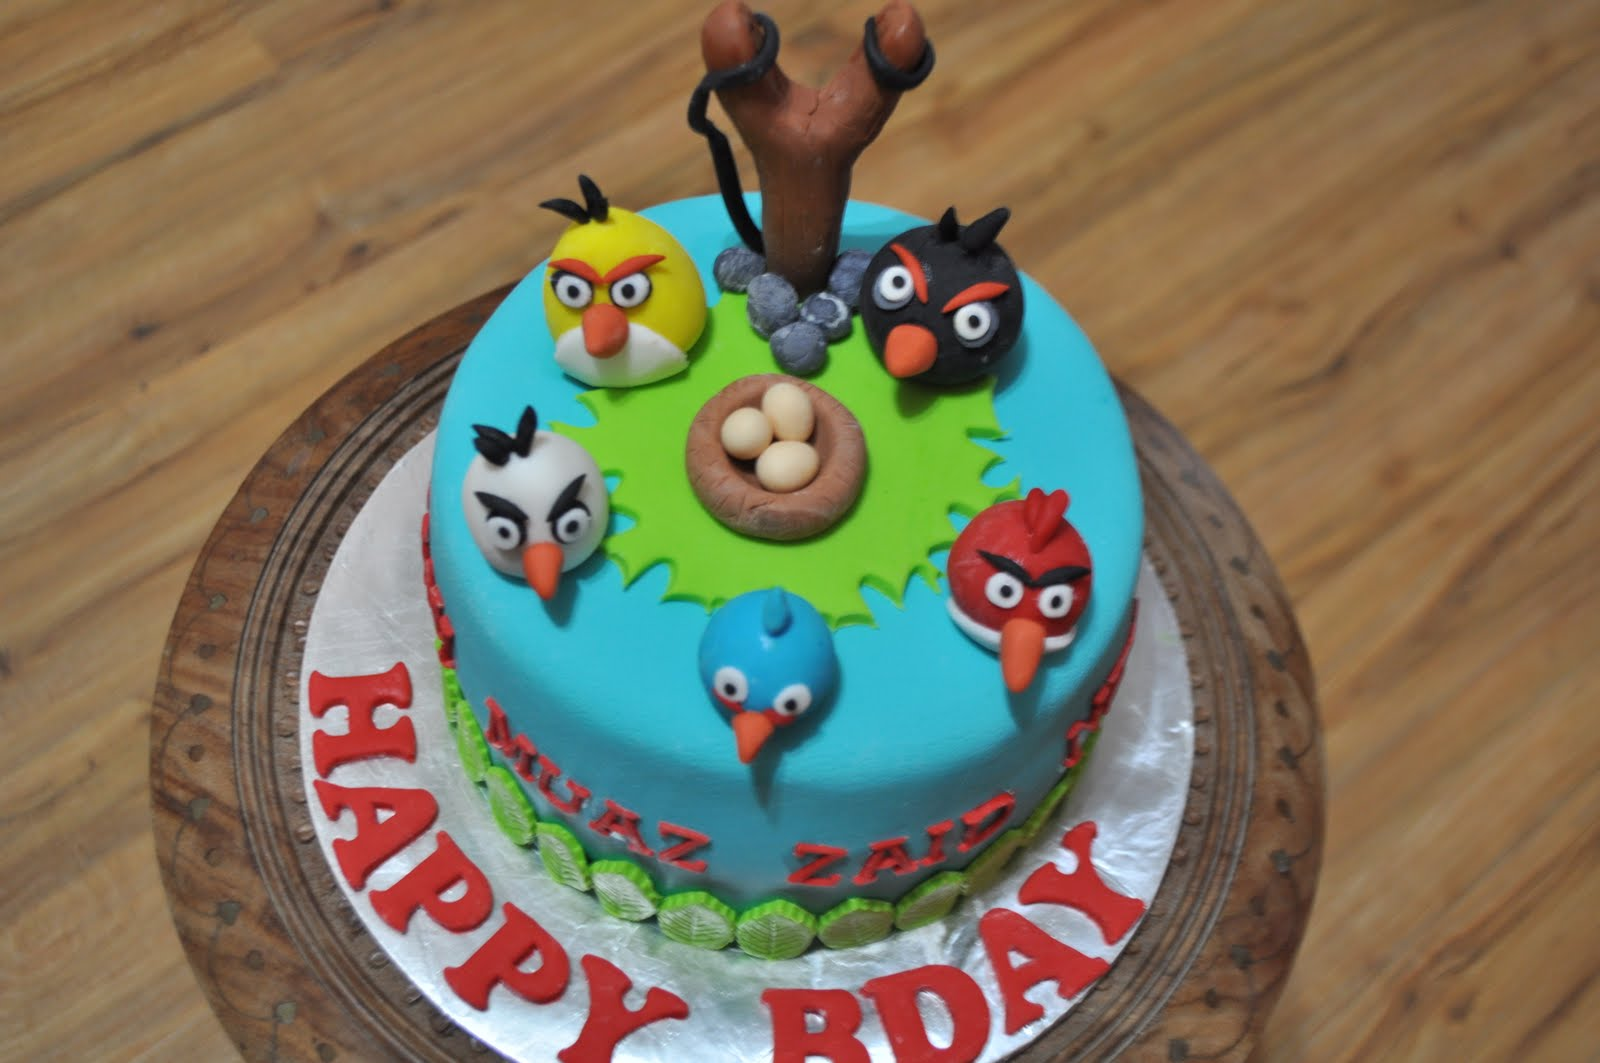 Pictures Of Angry Birds Birthday Cakes : dari oven yang comel: Angry bird cake